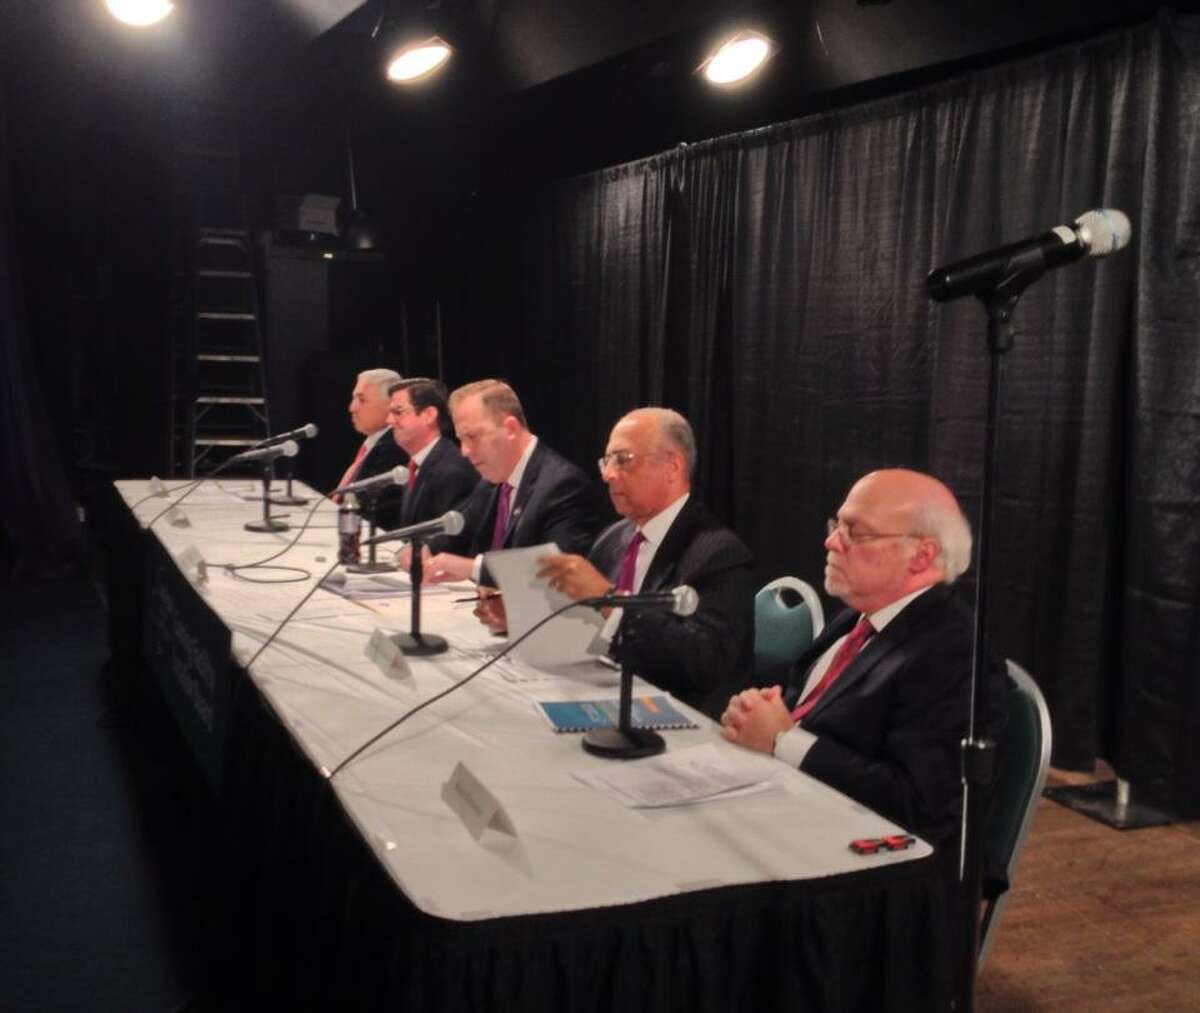 Members of the state Gaming Commission Siting Board announce their recommendations for casino sites during a meeting in Albany, NY, on Dec. 17, 2014. (John Carl D'Annibale/Times Union)